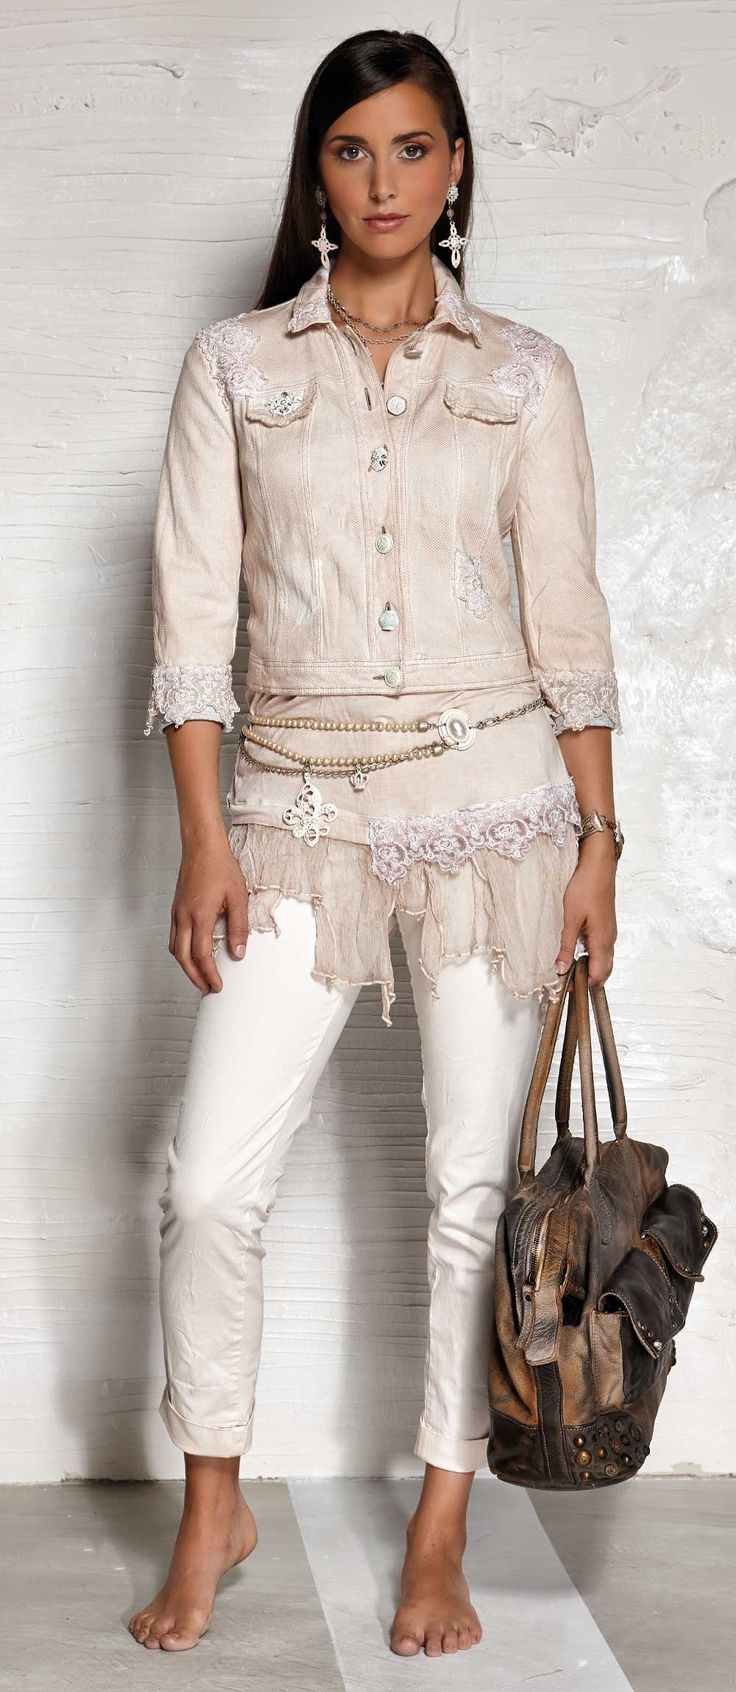 Daniela dallavalle fall style pinterest v tements for Tenue shabby chic